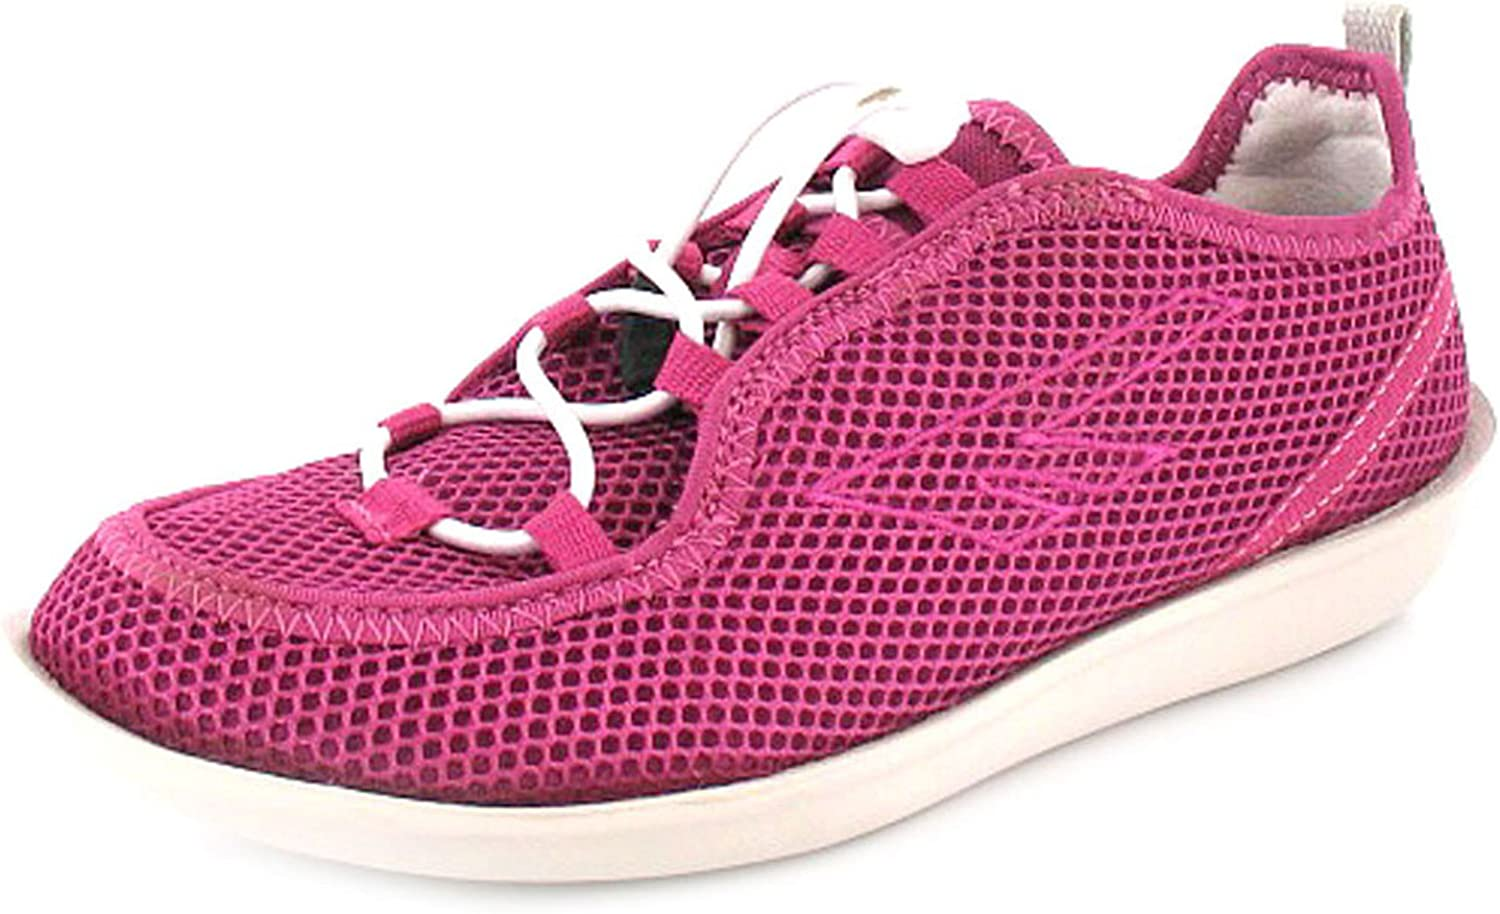 Ladies Pink Trainers New Womens Slip on Lightweight Sports Shoes Sizes 4-8